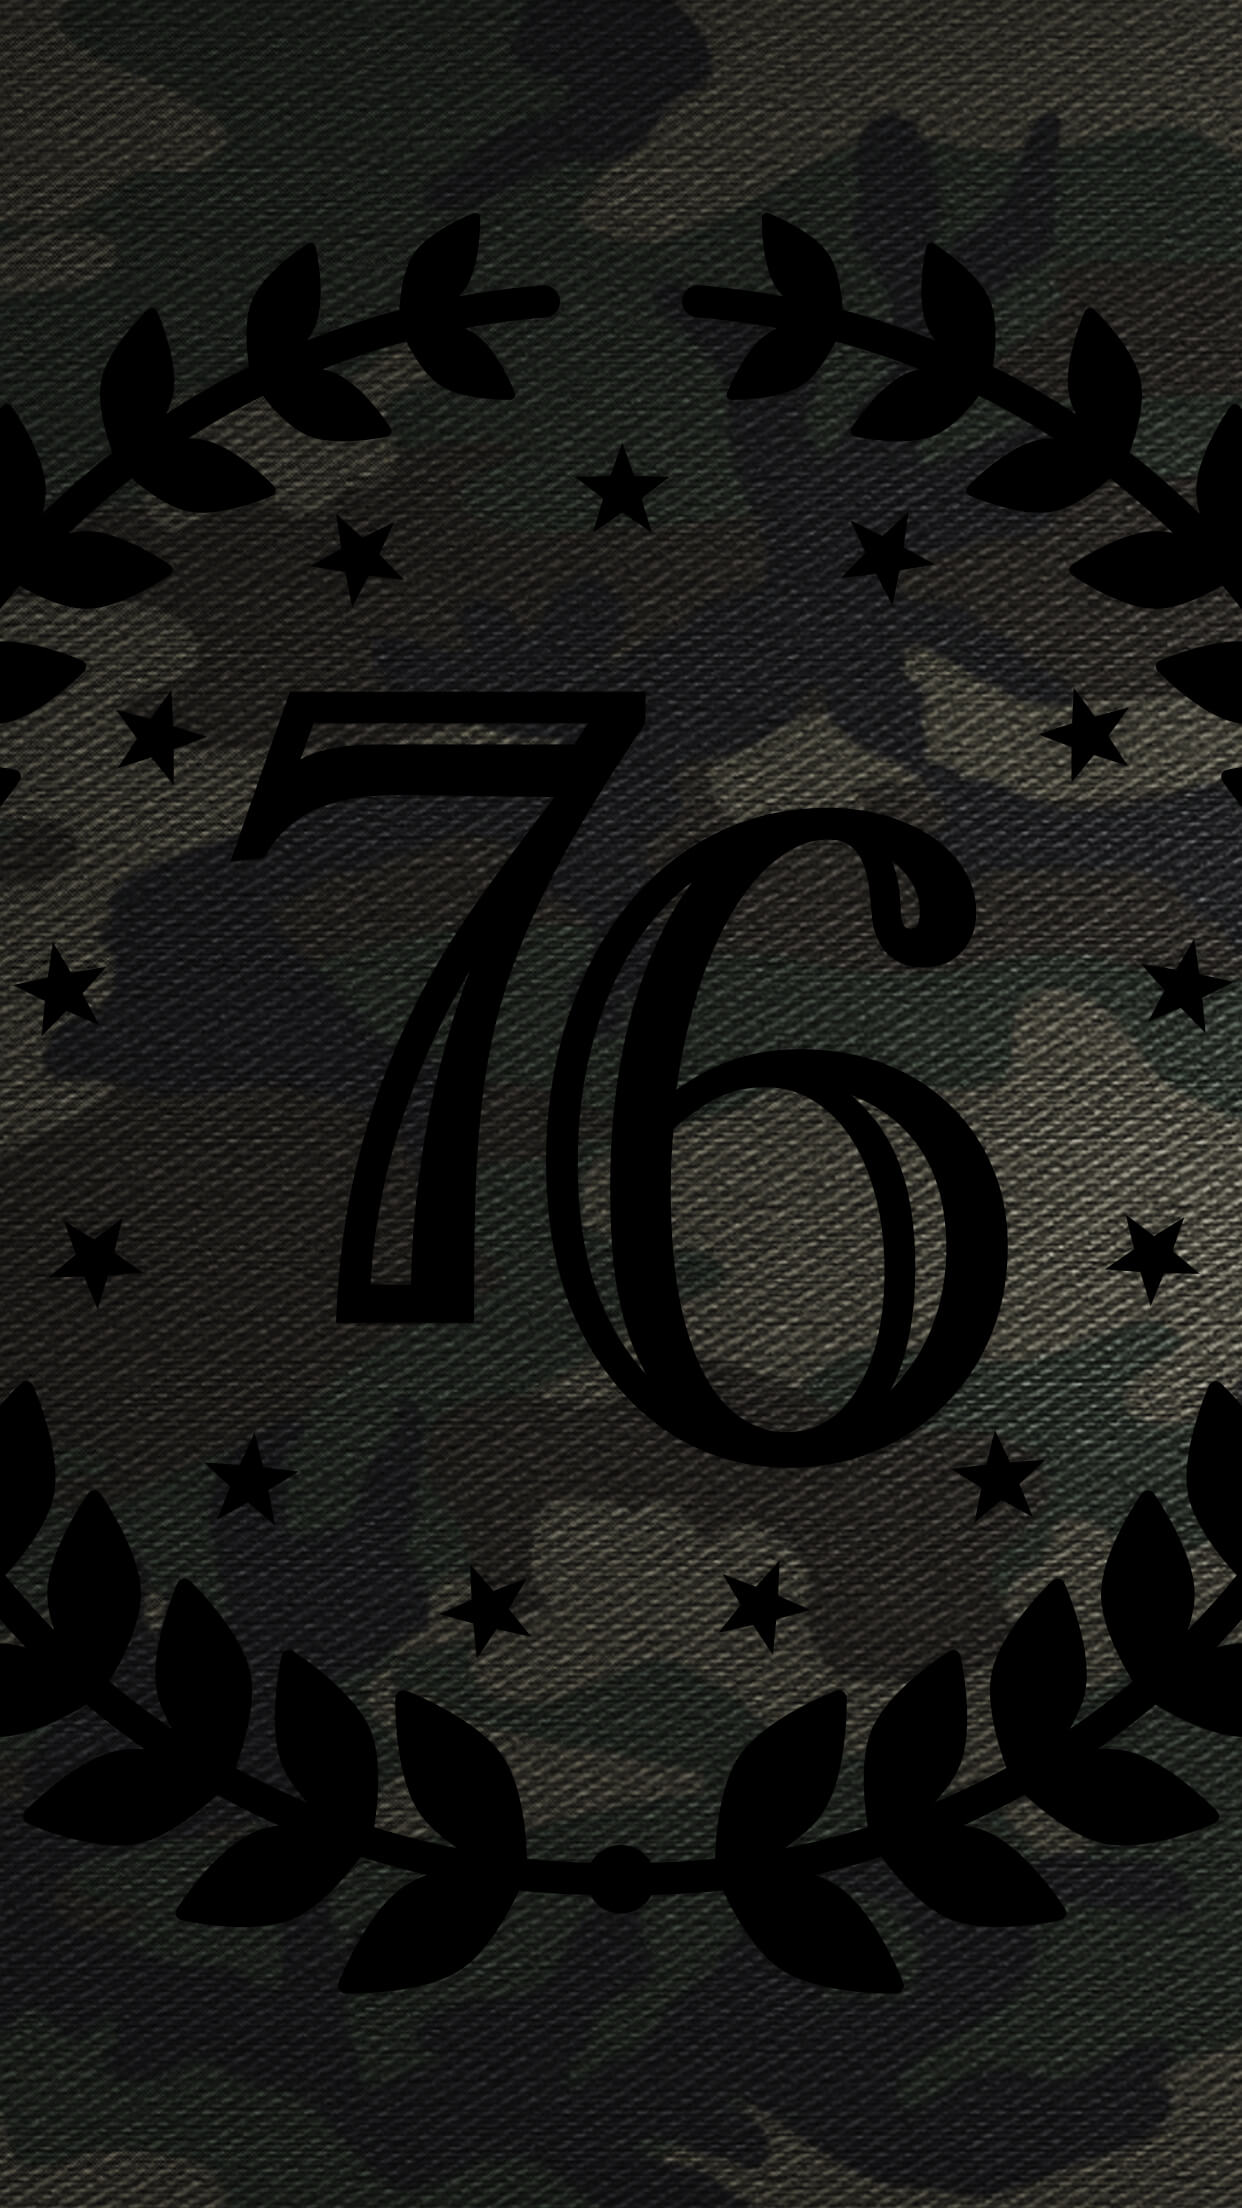 1776 United Camo Mobile Phone Wallpaper